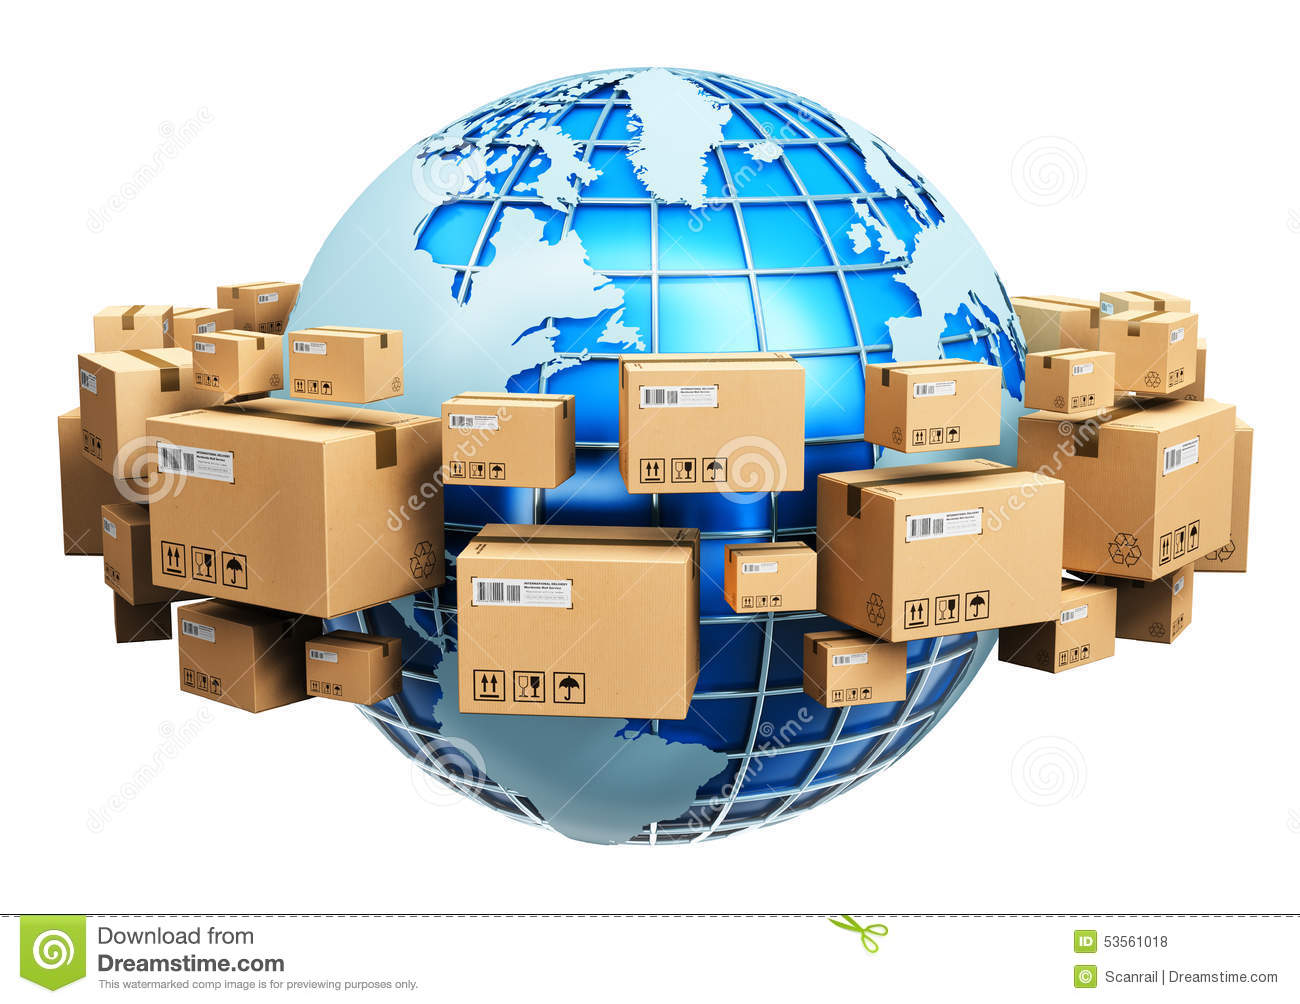 How to Become a Packing Supply Distributor